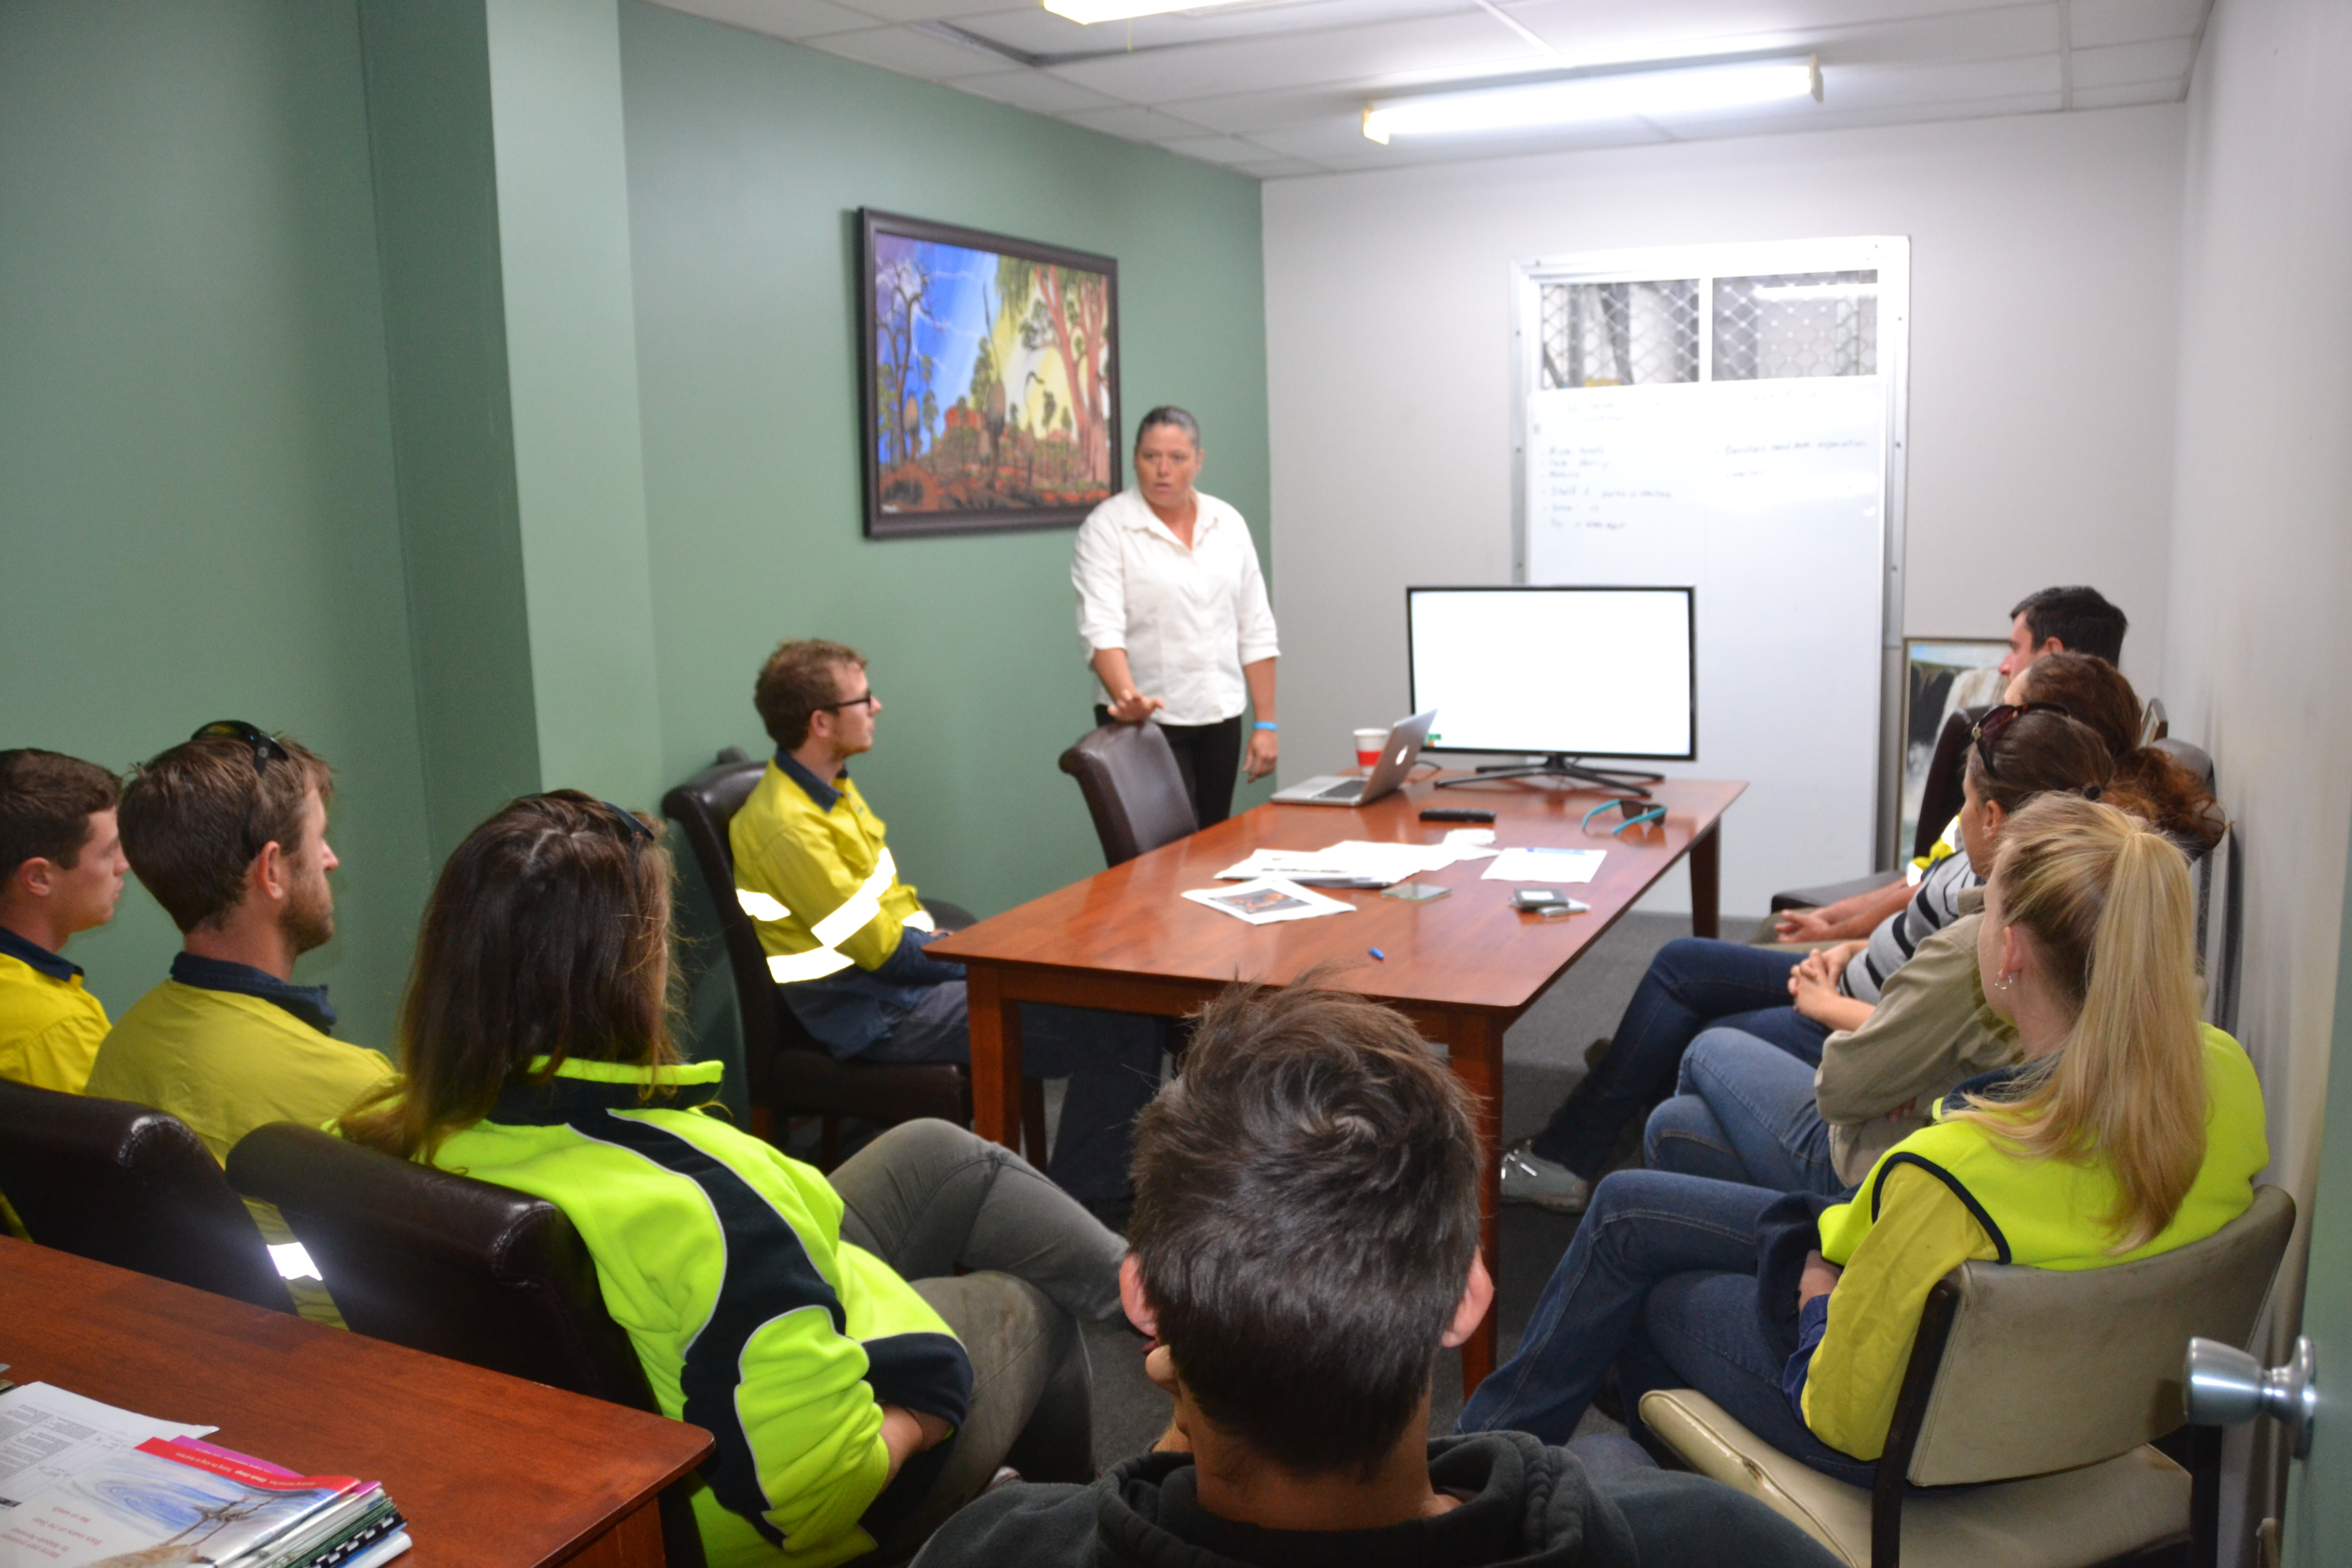 Safety and pre-start meetings